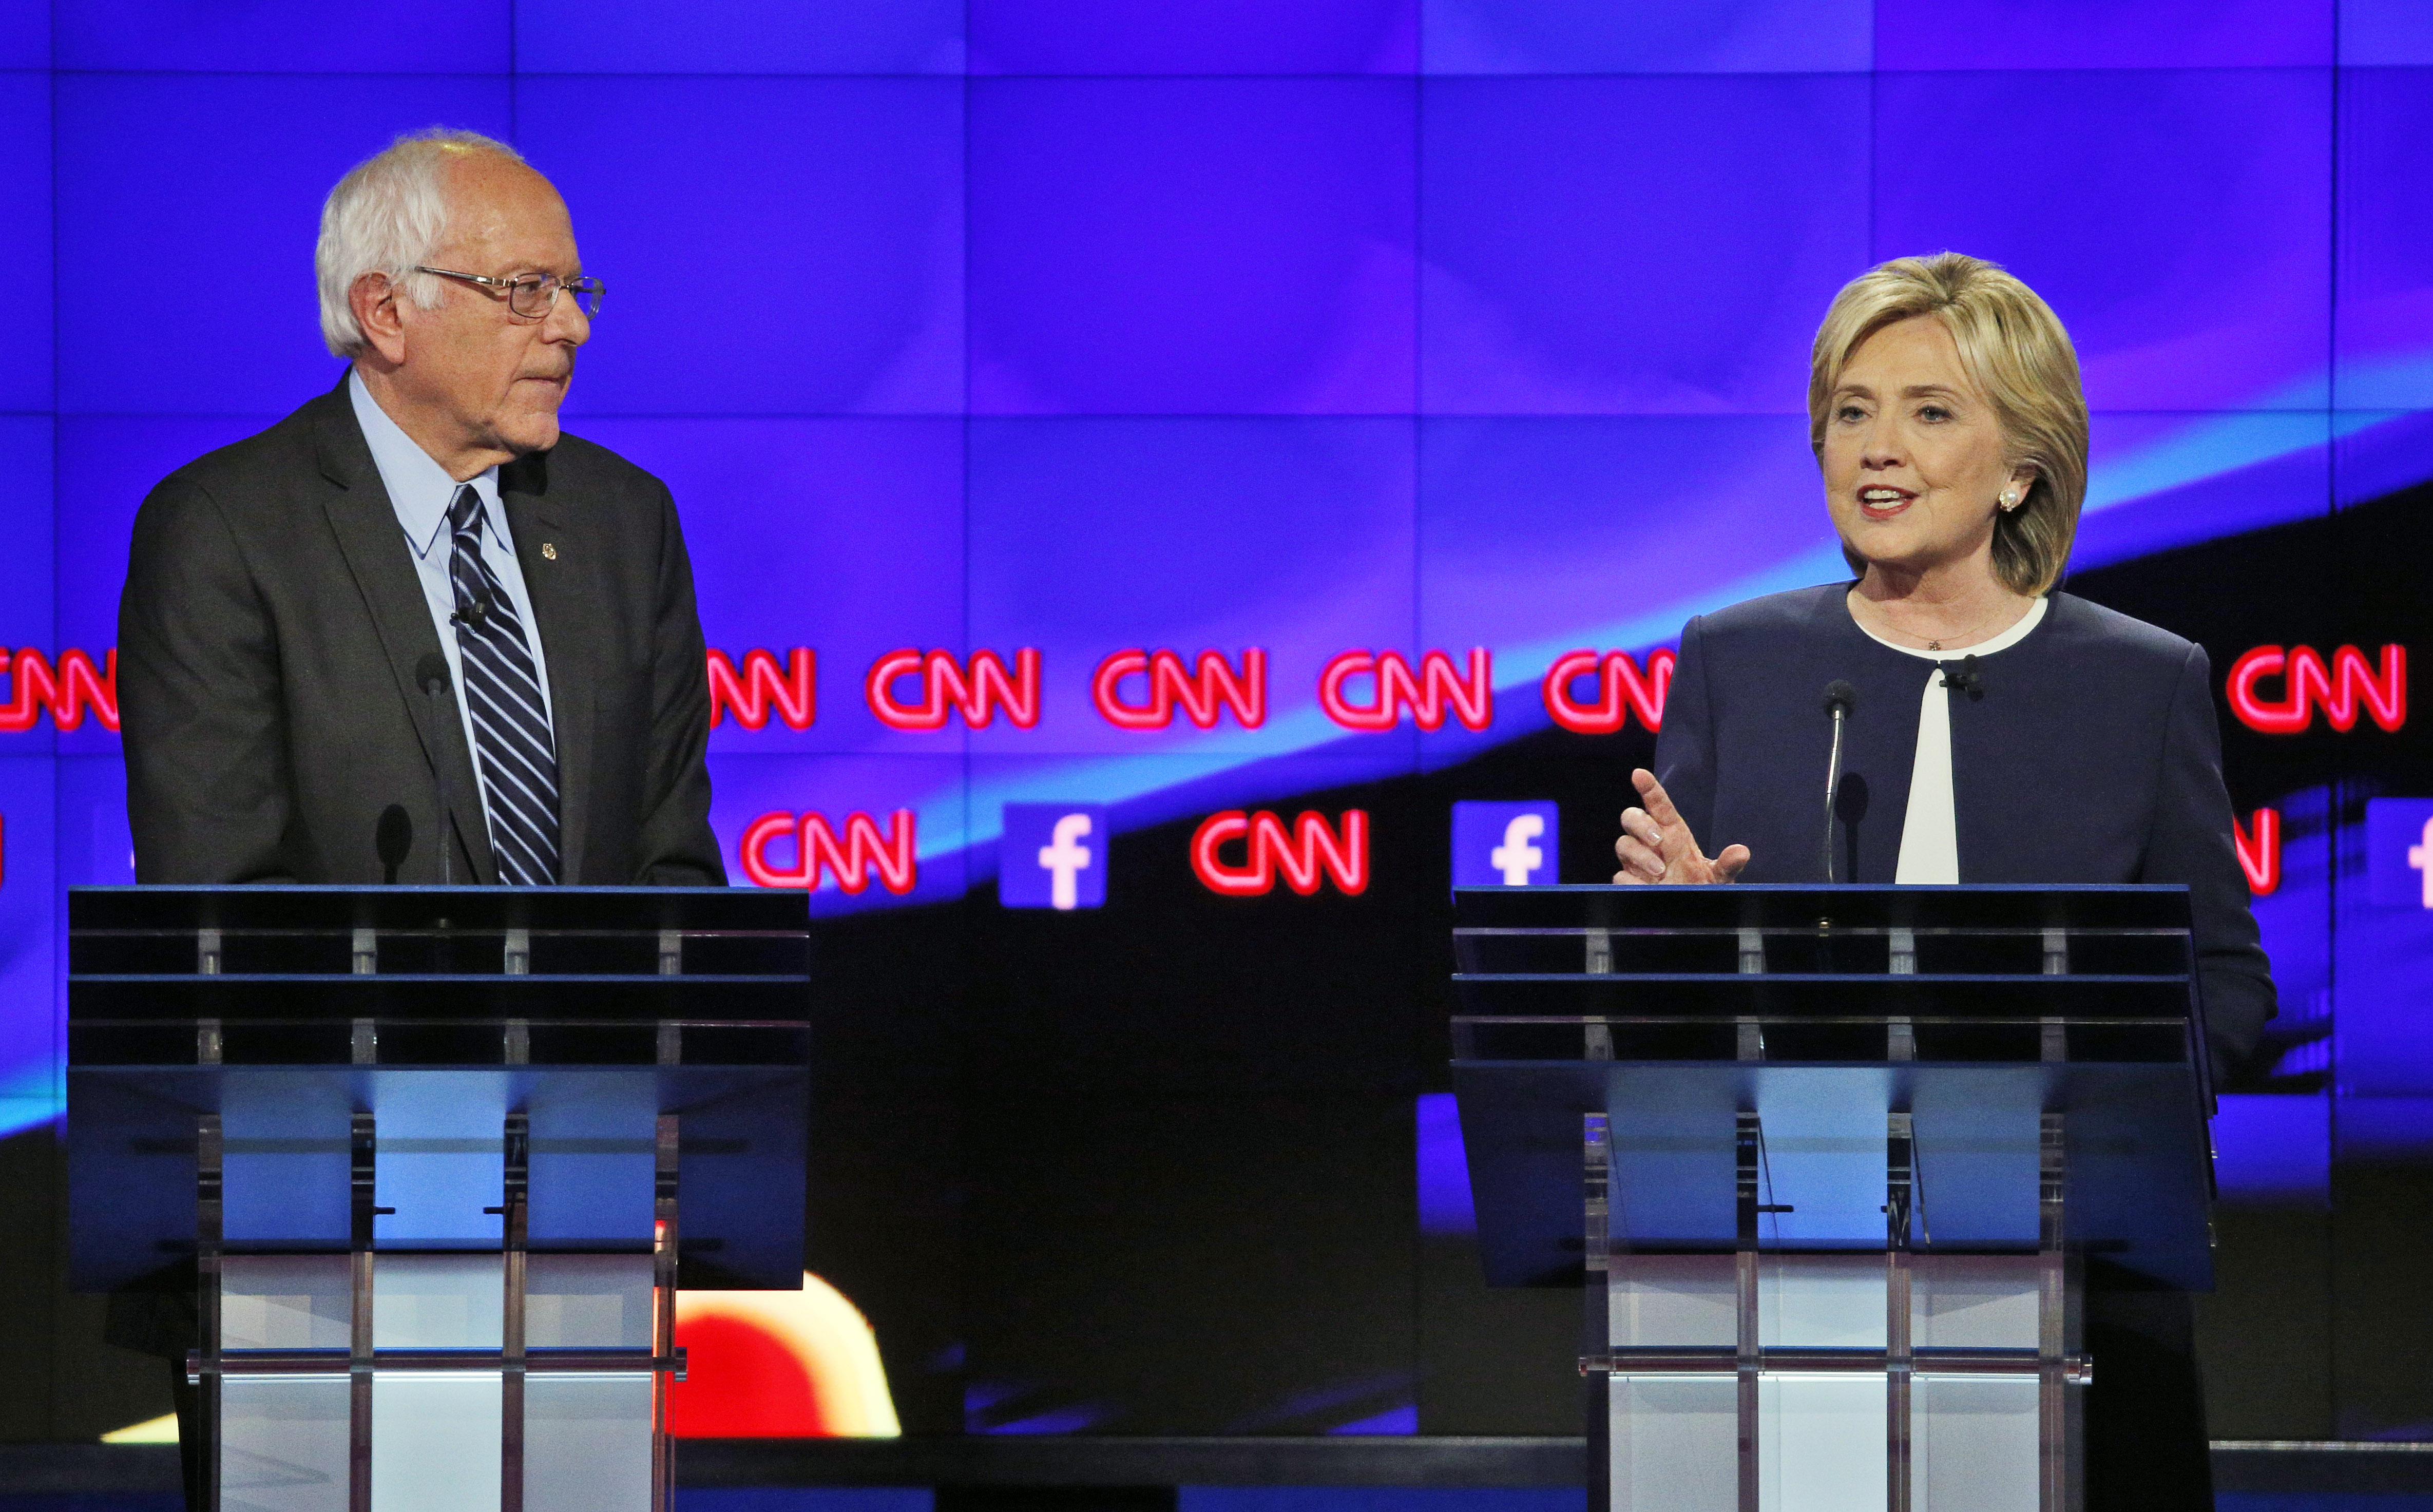 Former Secretary of State Hillary Clinton talks as Sen. Bernie Sanders of Vermont listens during the CNN Democratic presidential debate in Las Vegas, Oct. 13, 2015.